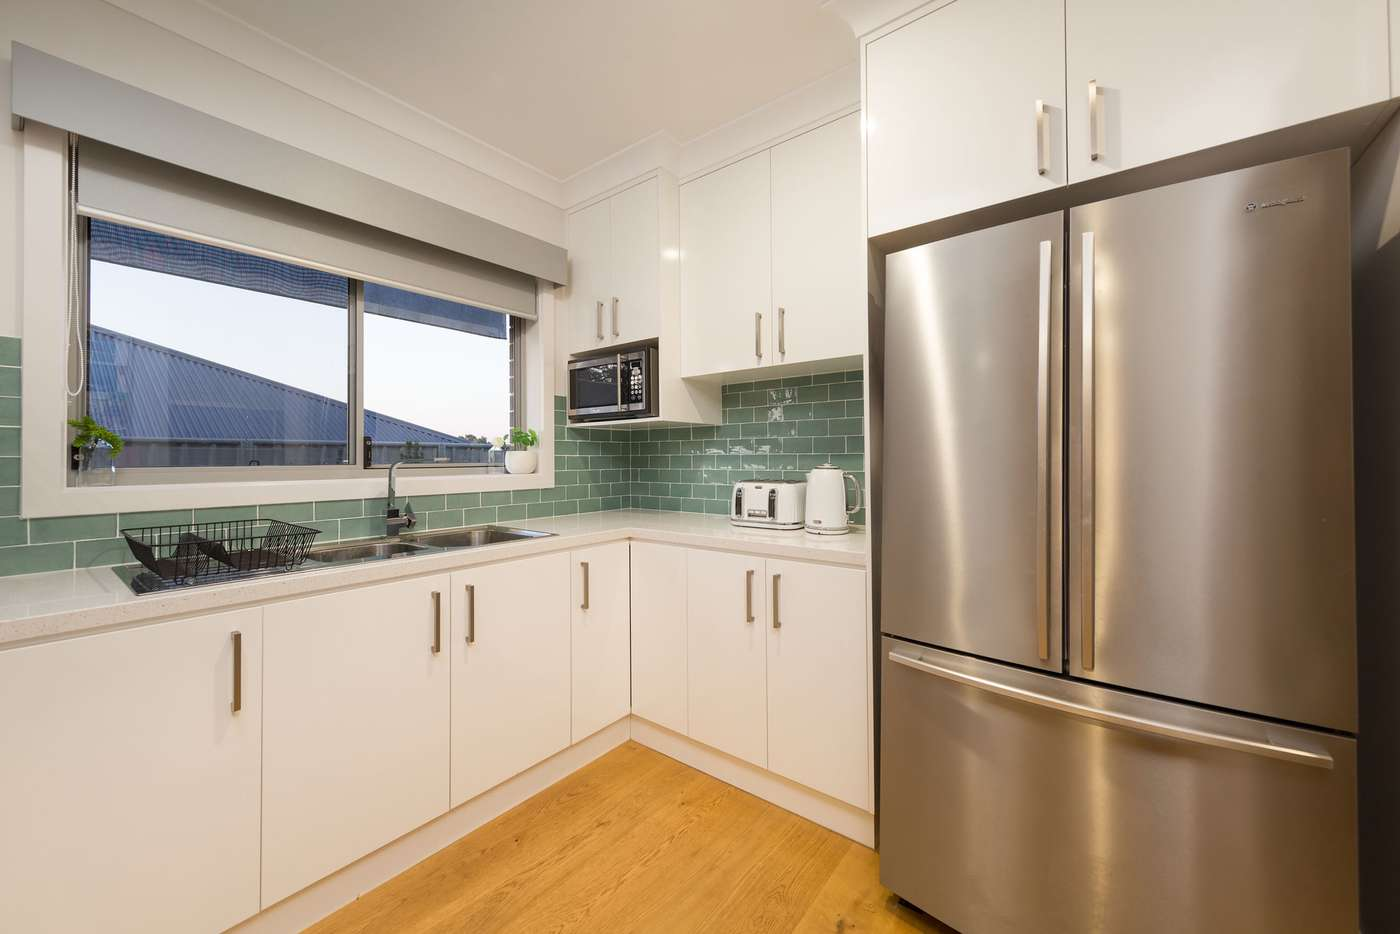 Sixth view of Homely house listing, 12 Partridge Way, Wodonga VIC 3690